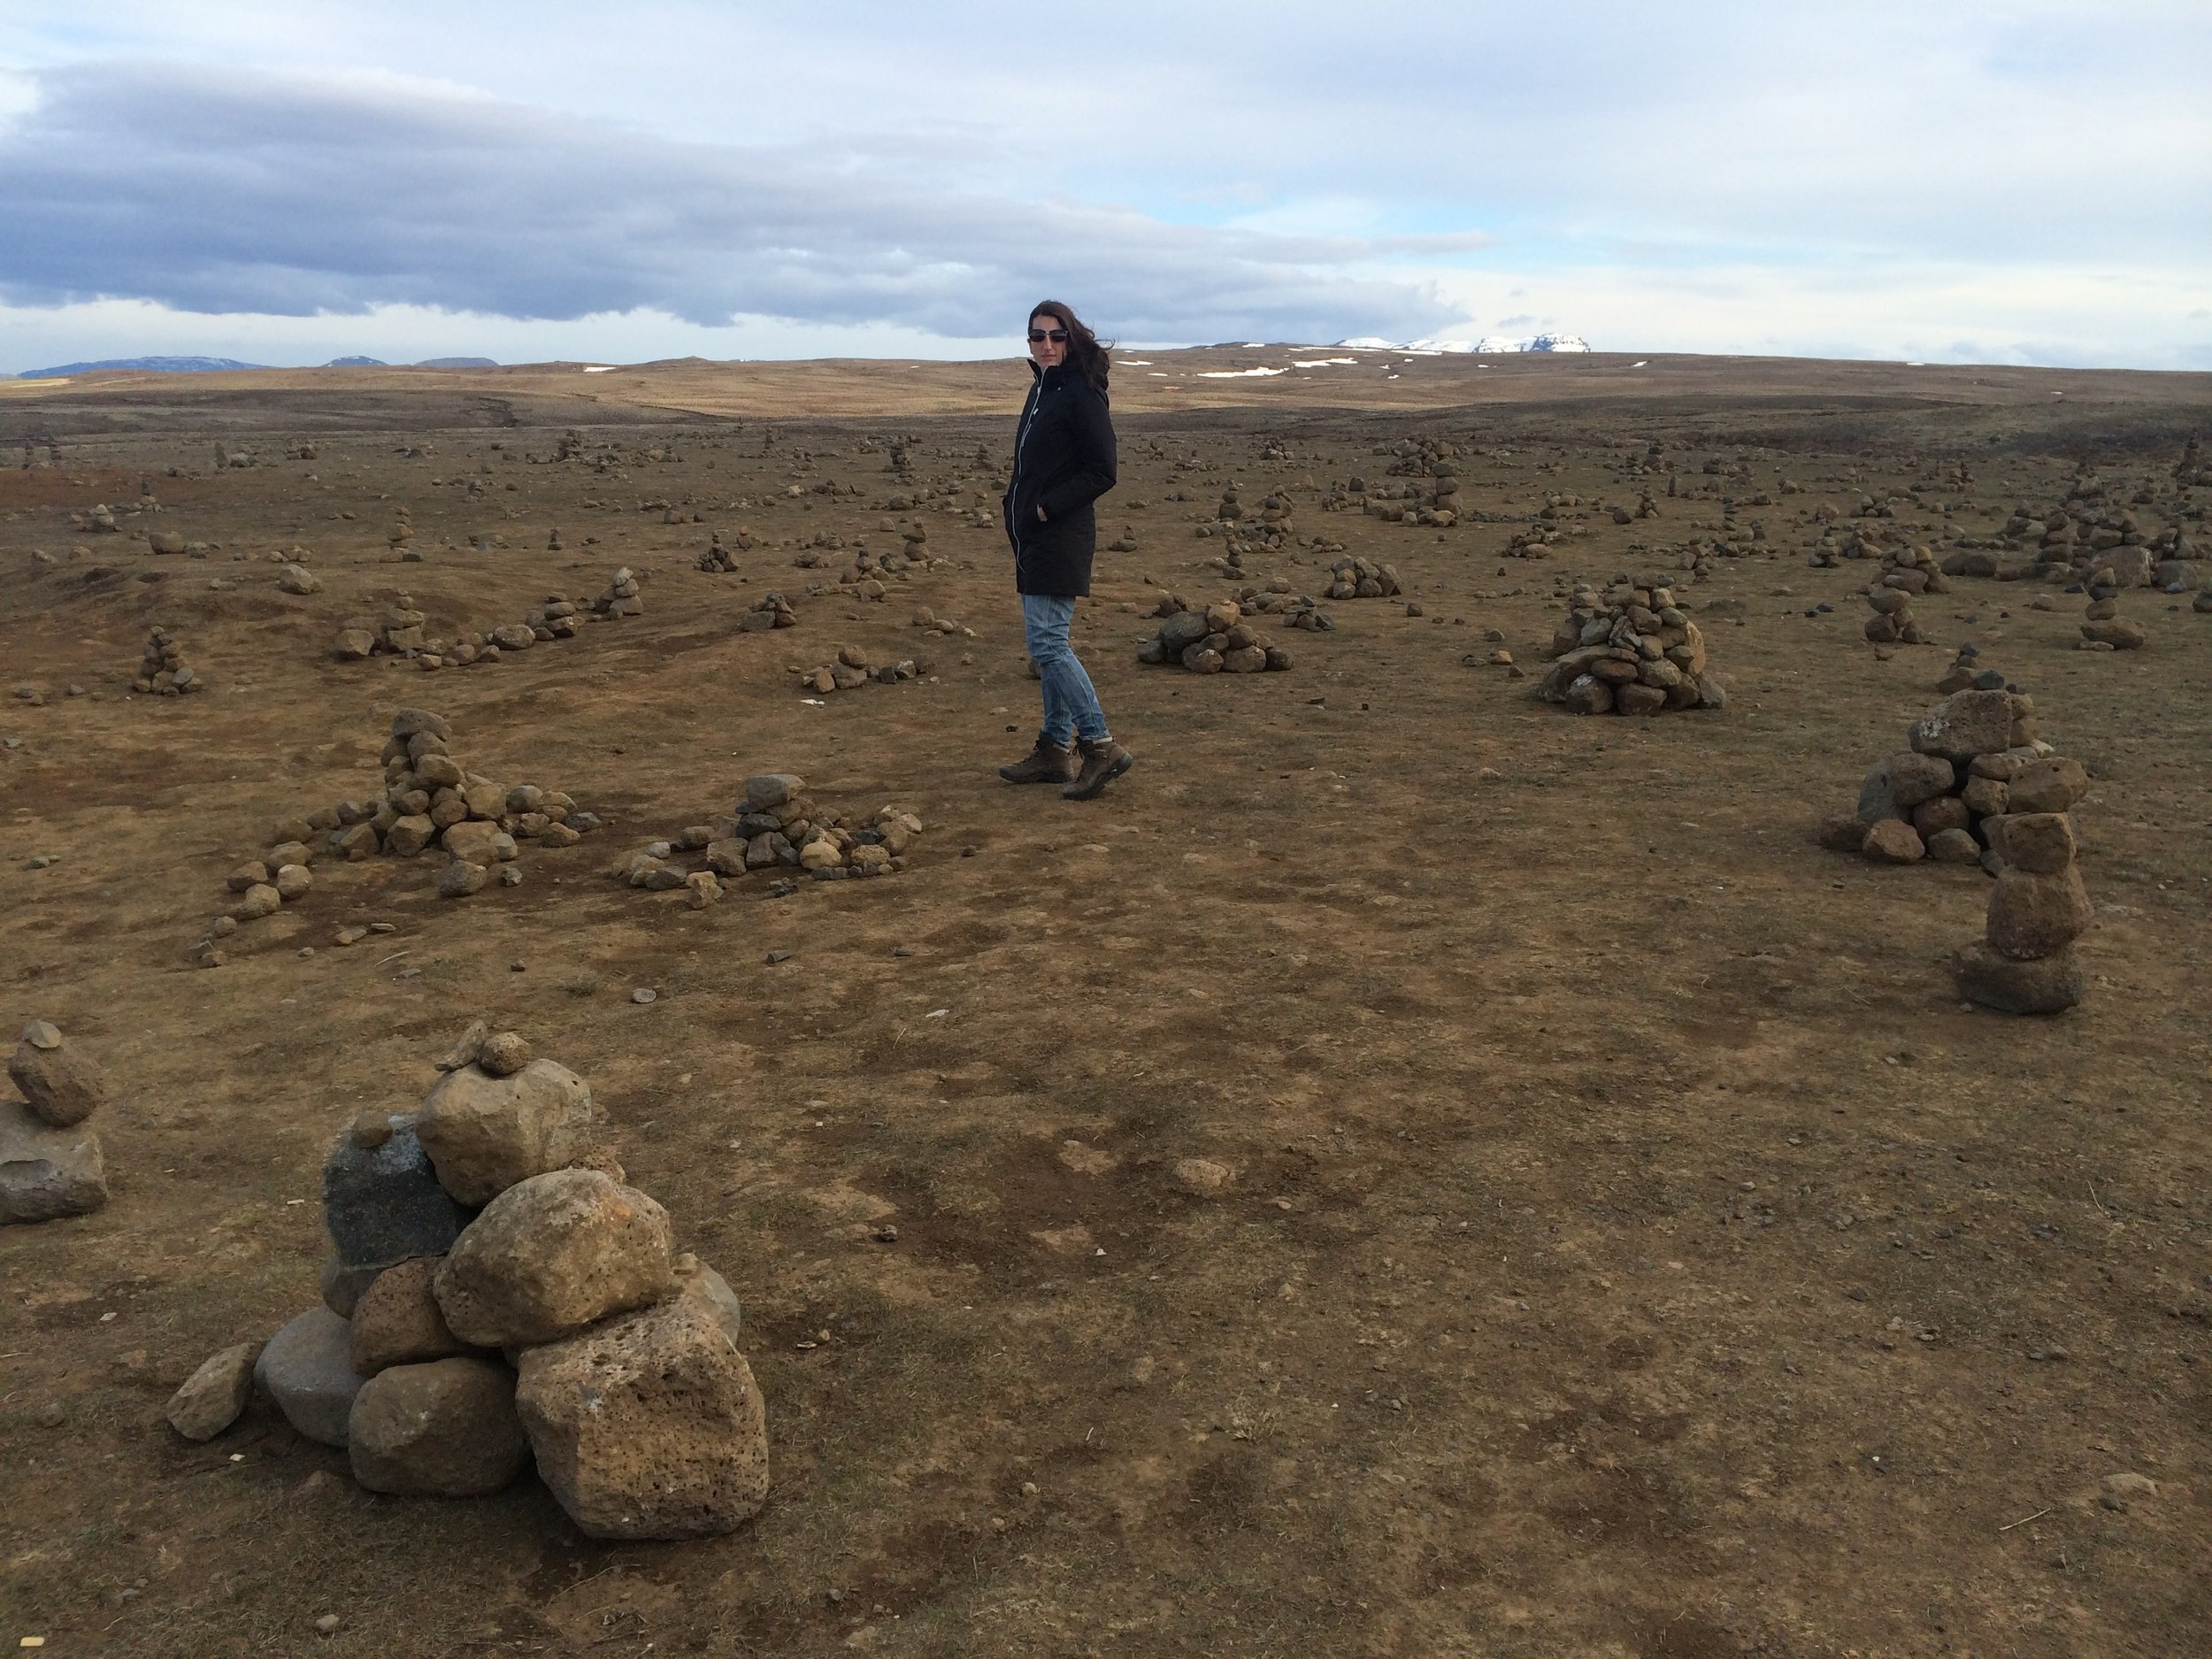 A roadside cairn field - WHO MADE THESE CAIRNS?!